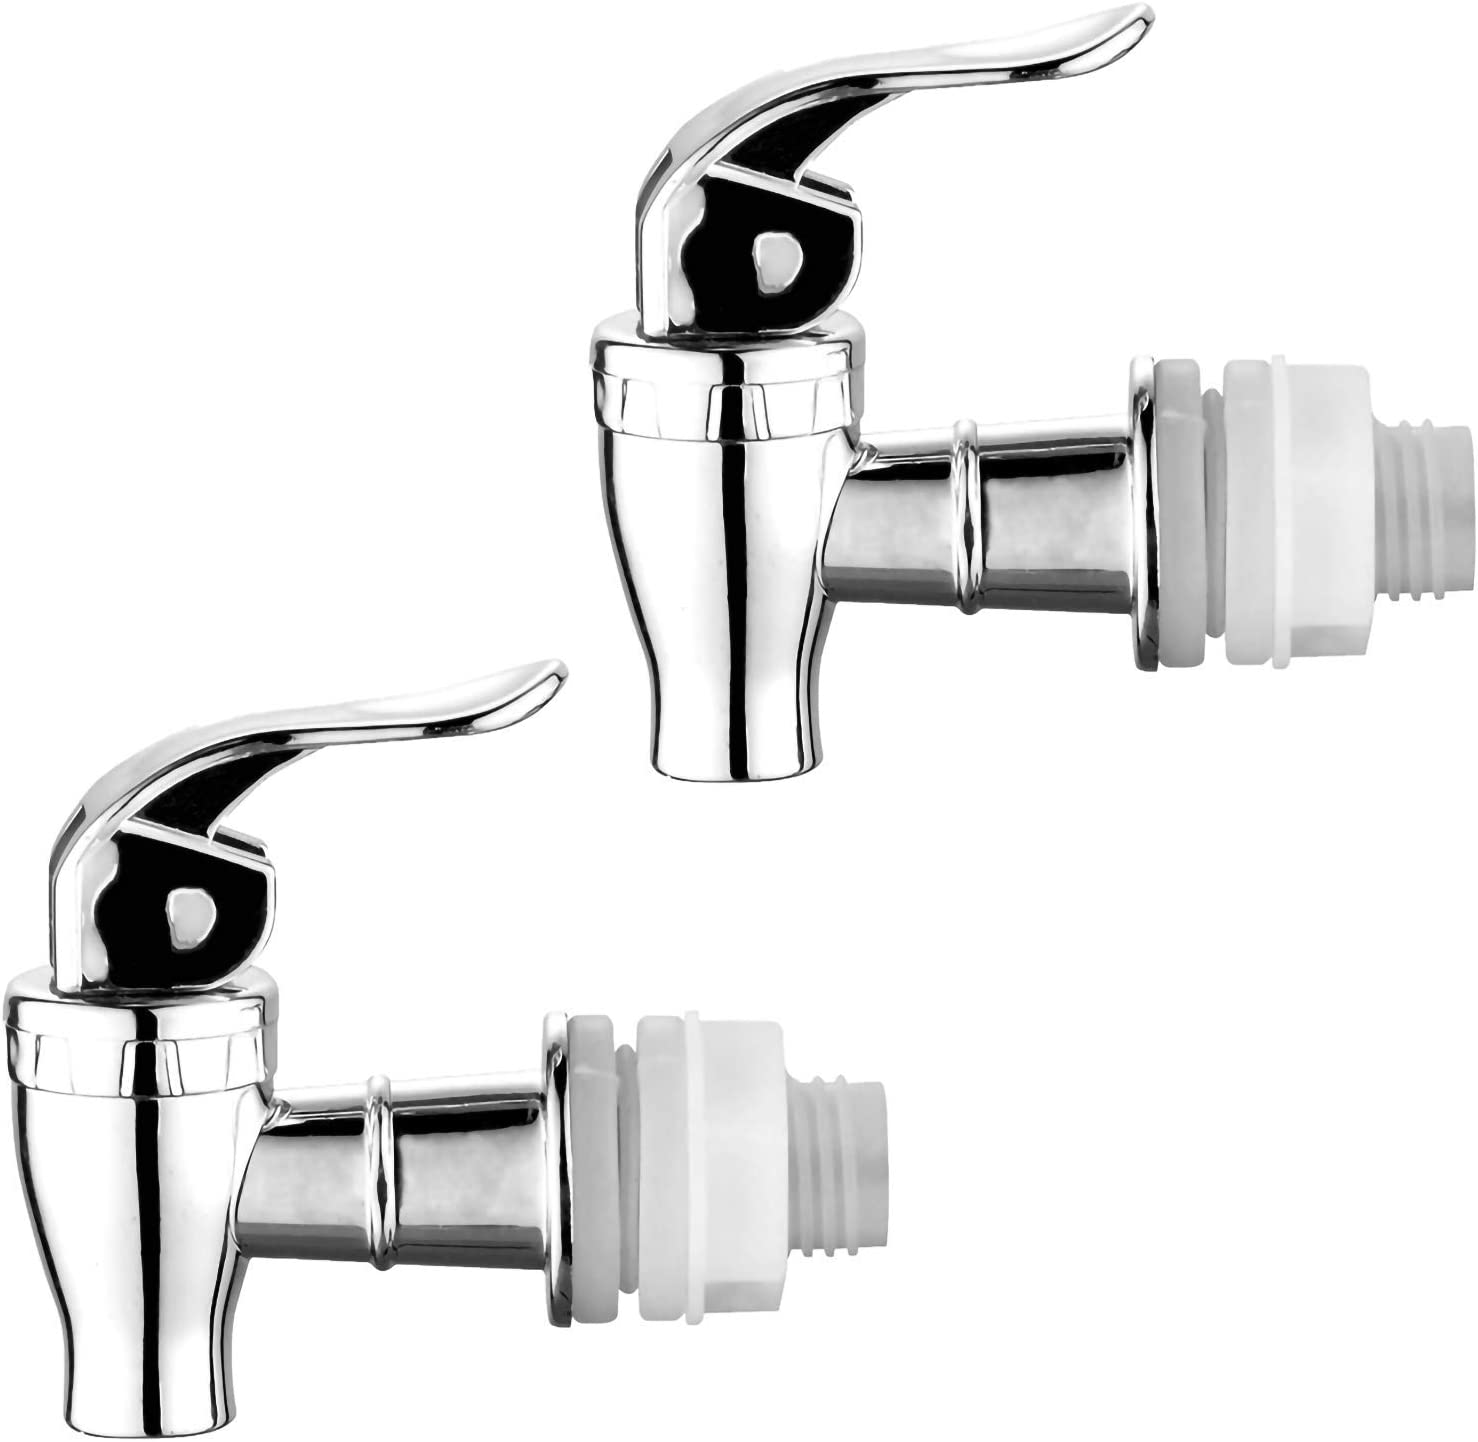 2 Pack Beverage Dispenser Replacement Spigot, spout for Beverage Dispenser, Water Dispenser Replacement Faucet